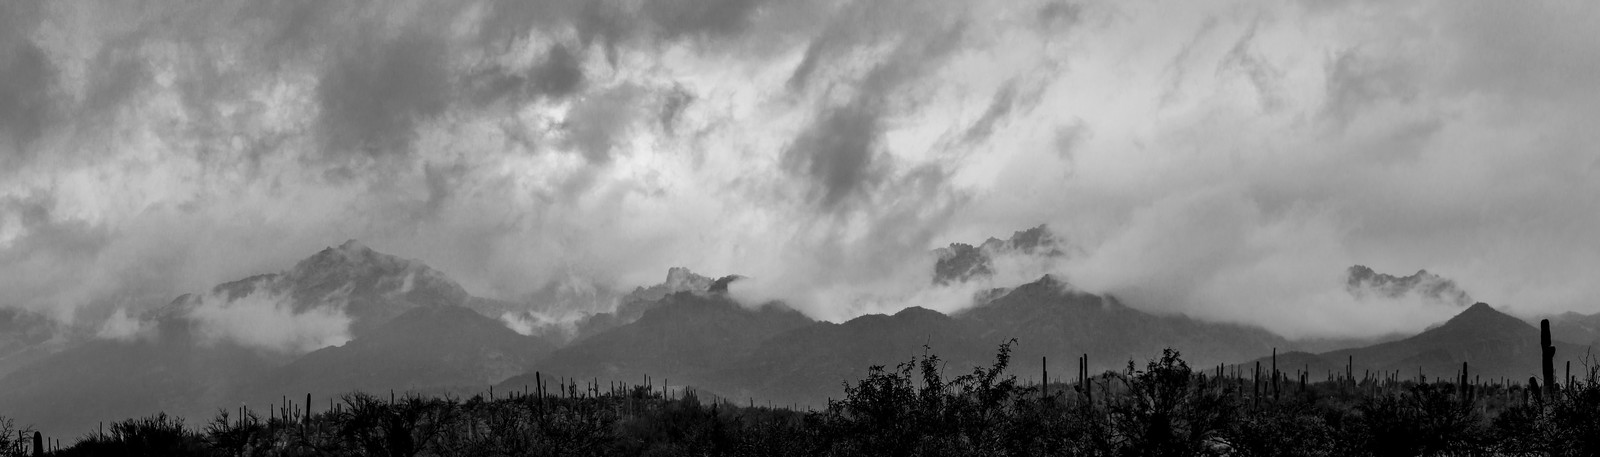 1412 Clouds over the Santa Catalina Mountains from Sabino Canyon